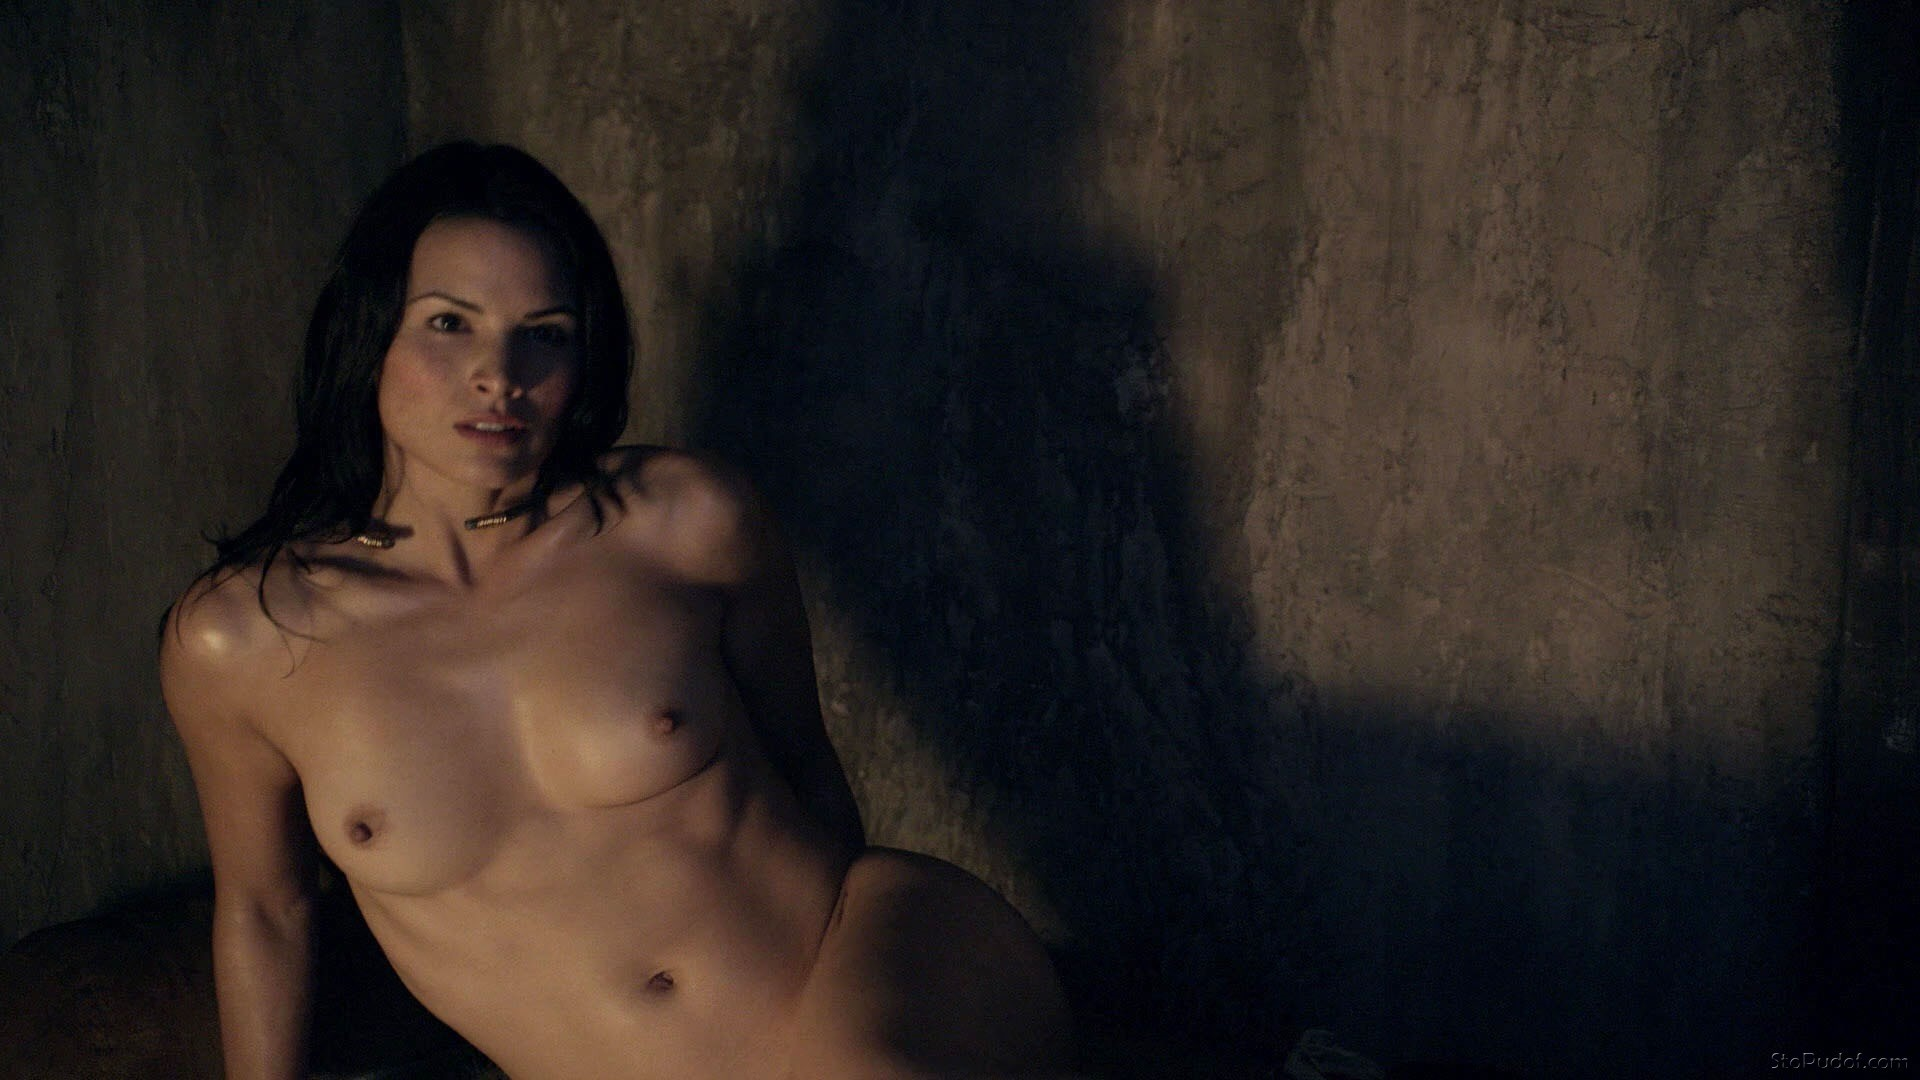 Katrina Law nude pics photos - UkPhotoSafari